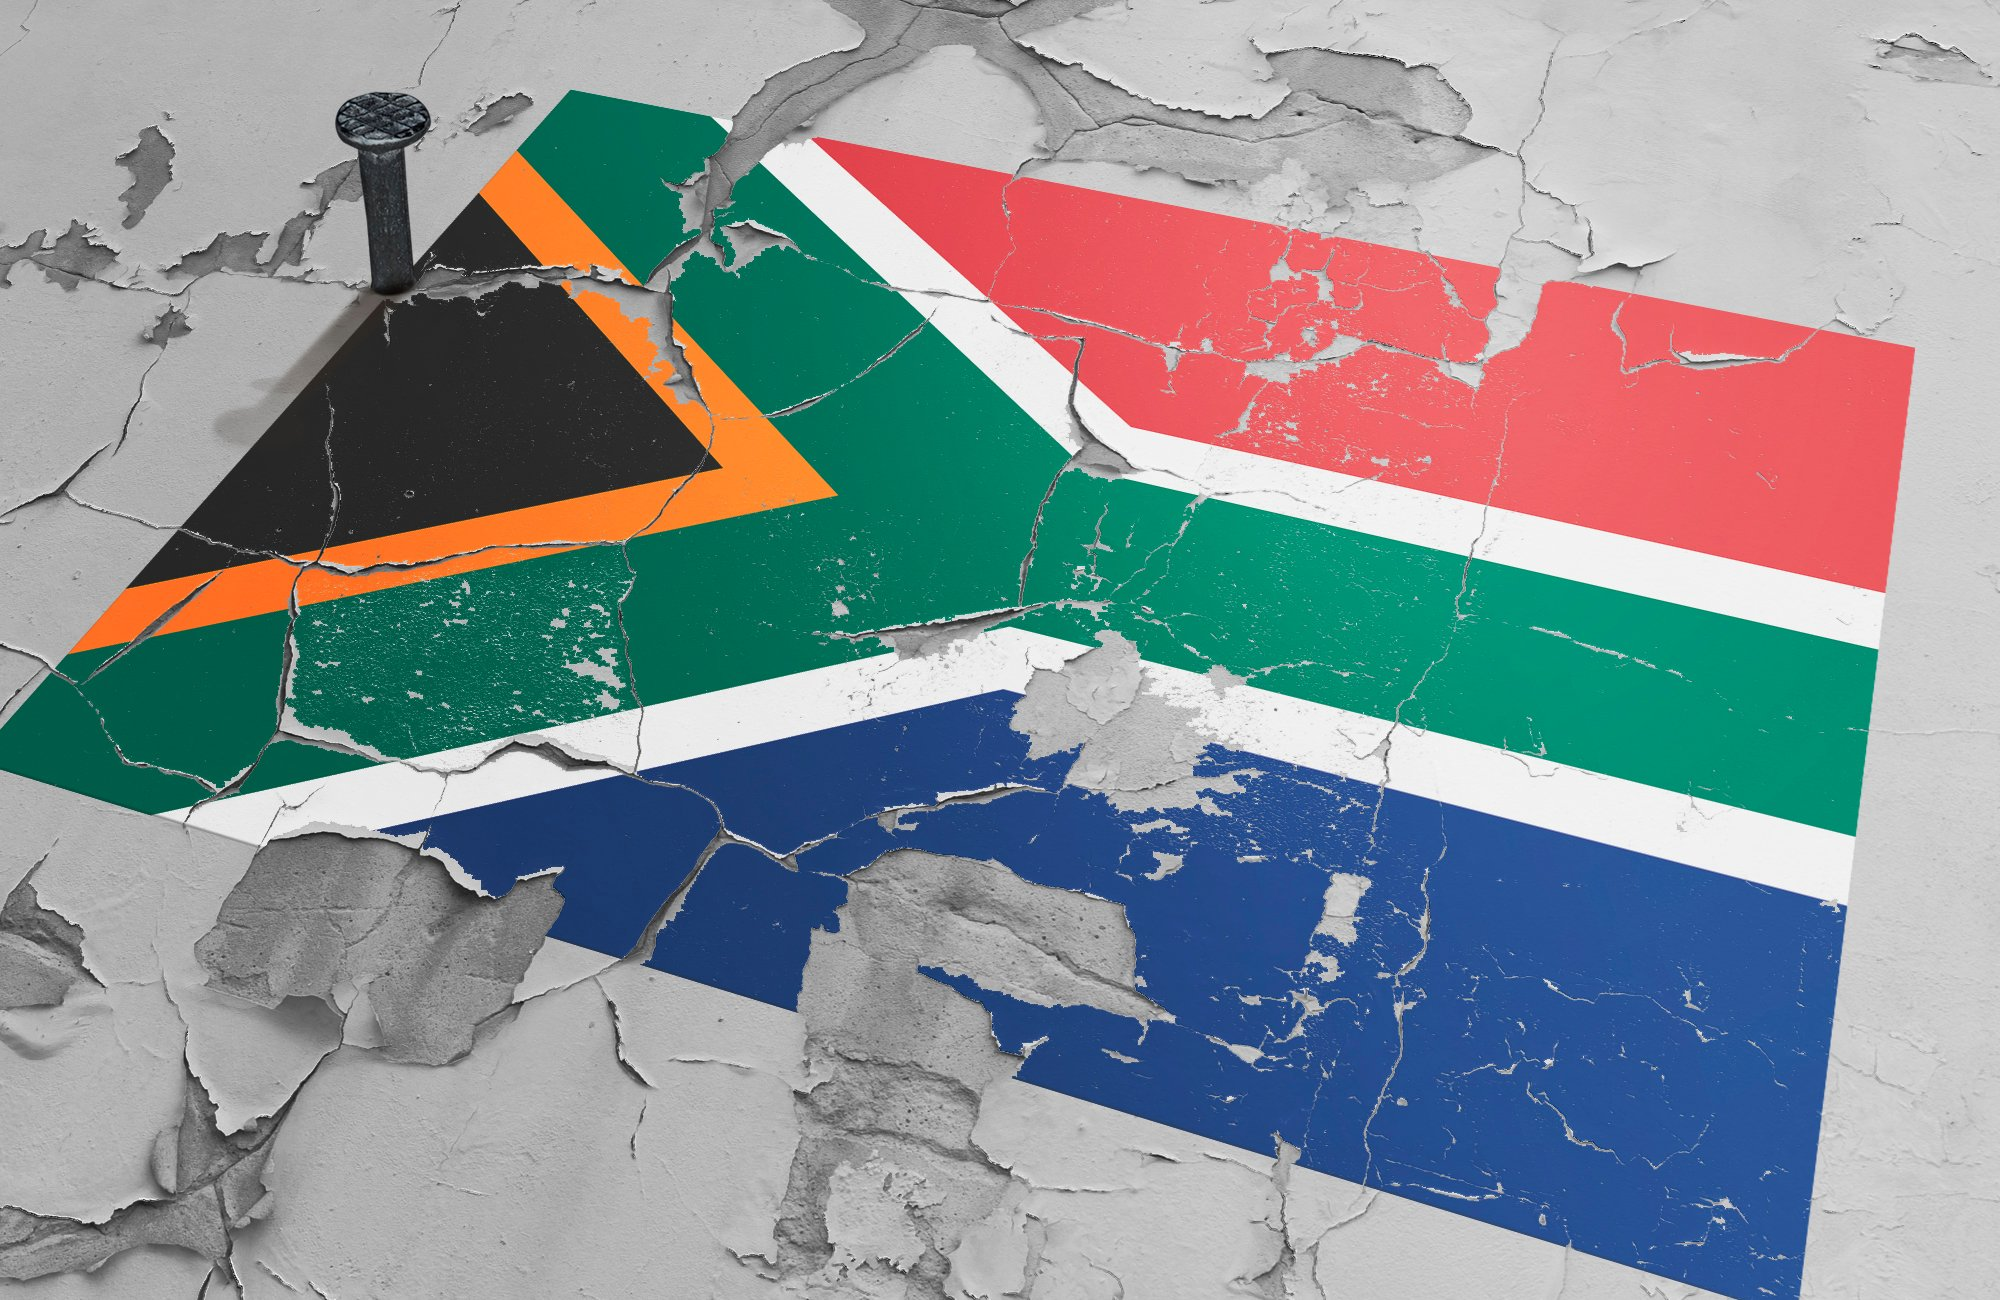 South Africa is going to get a lot worse